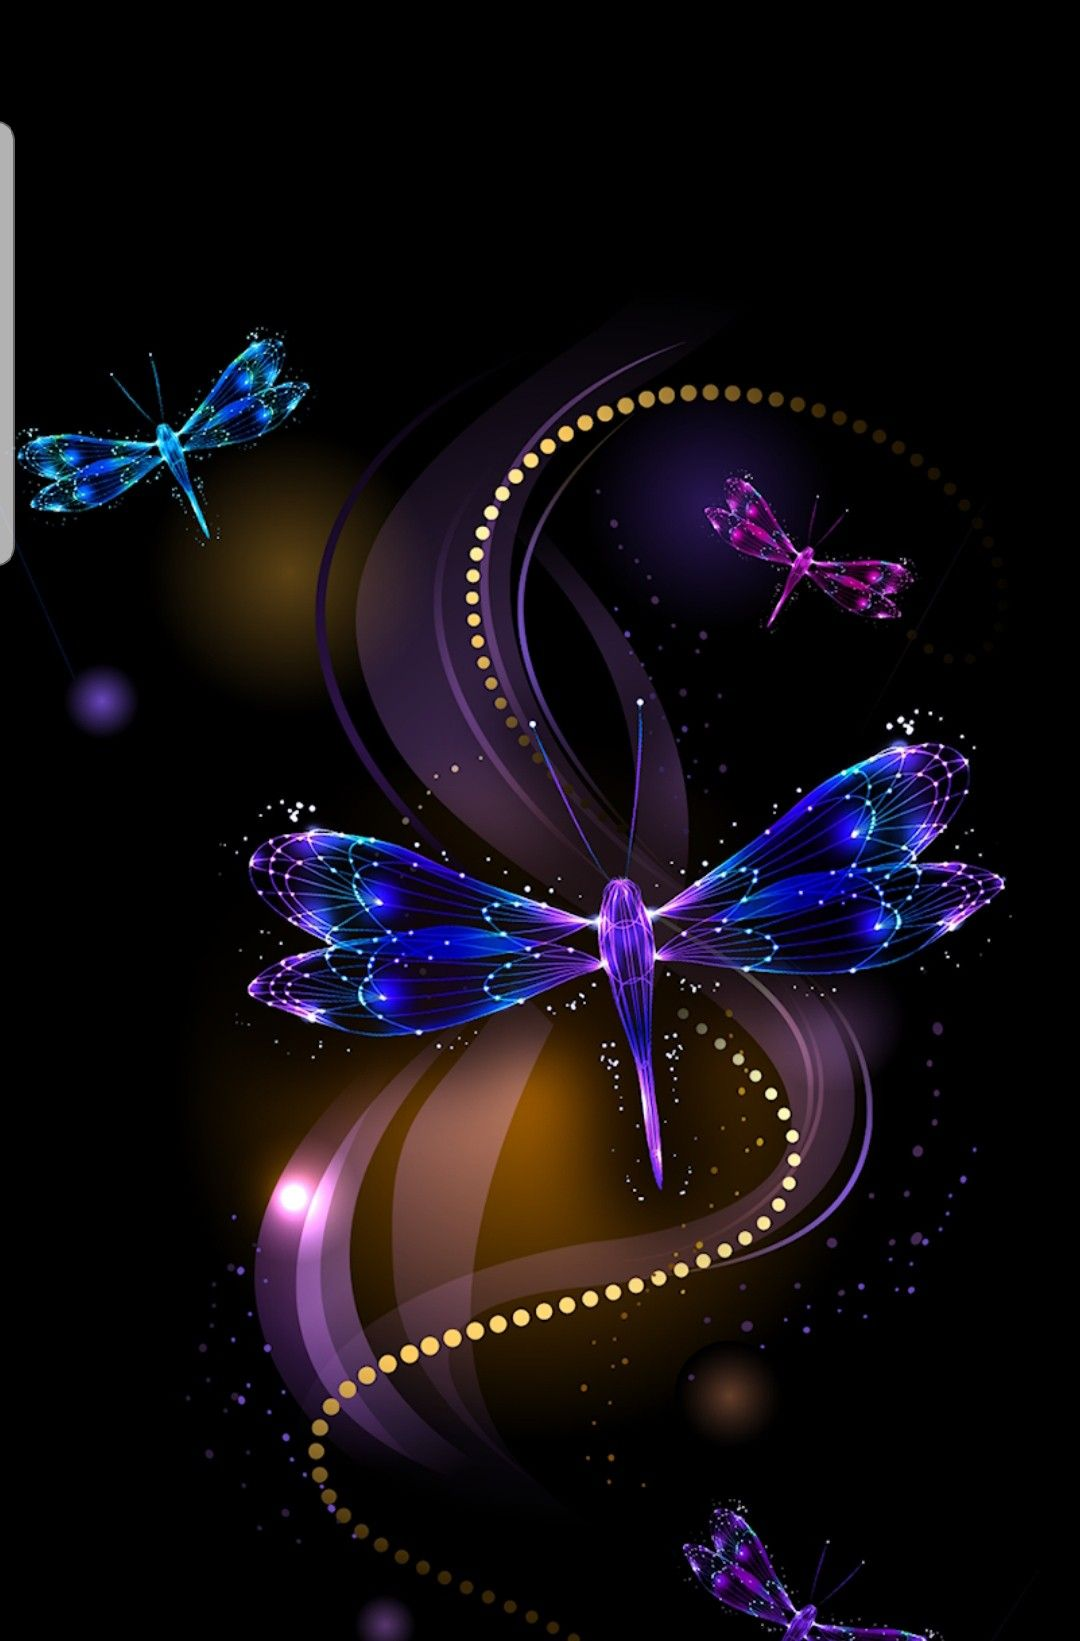 Pin By Eric And Carrie Carden On Dragonfly Dragonfly Wallpaper Dragonfly Wall Art Butterfly Wallpaper Backgrounds